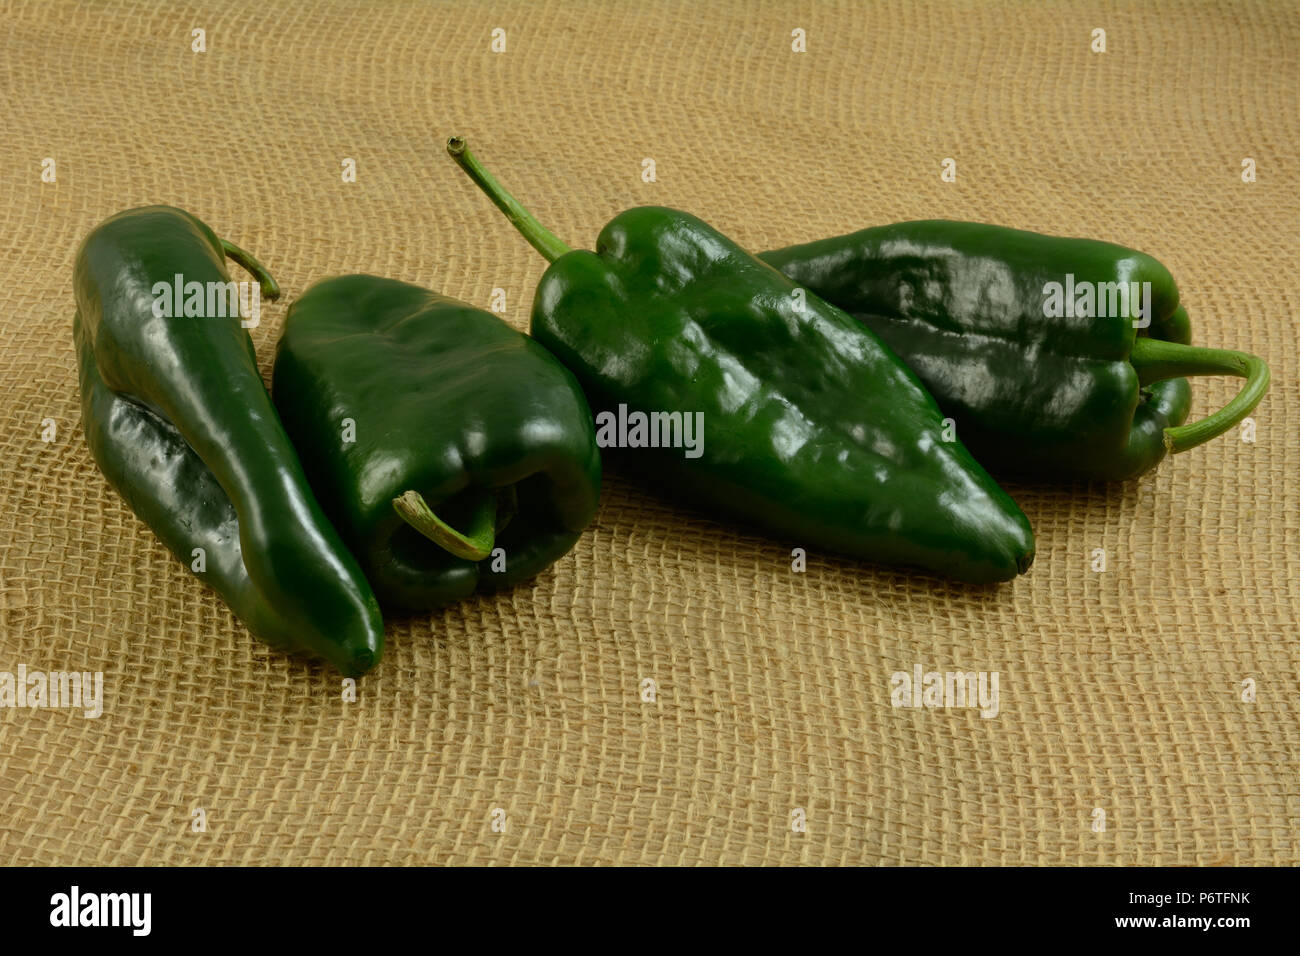 four raw whole freshly rinsed poblano peppers on burlap Stock Photo